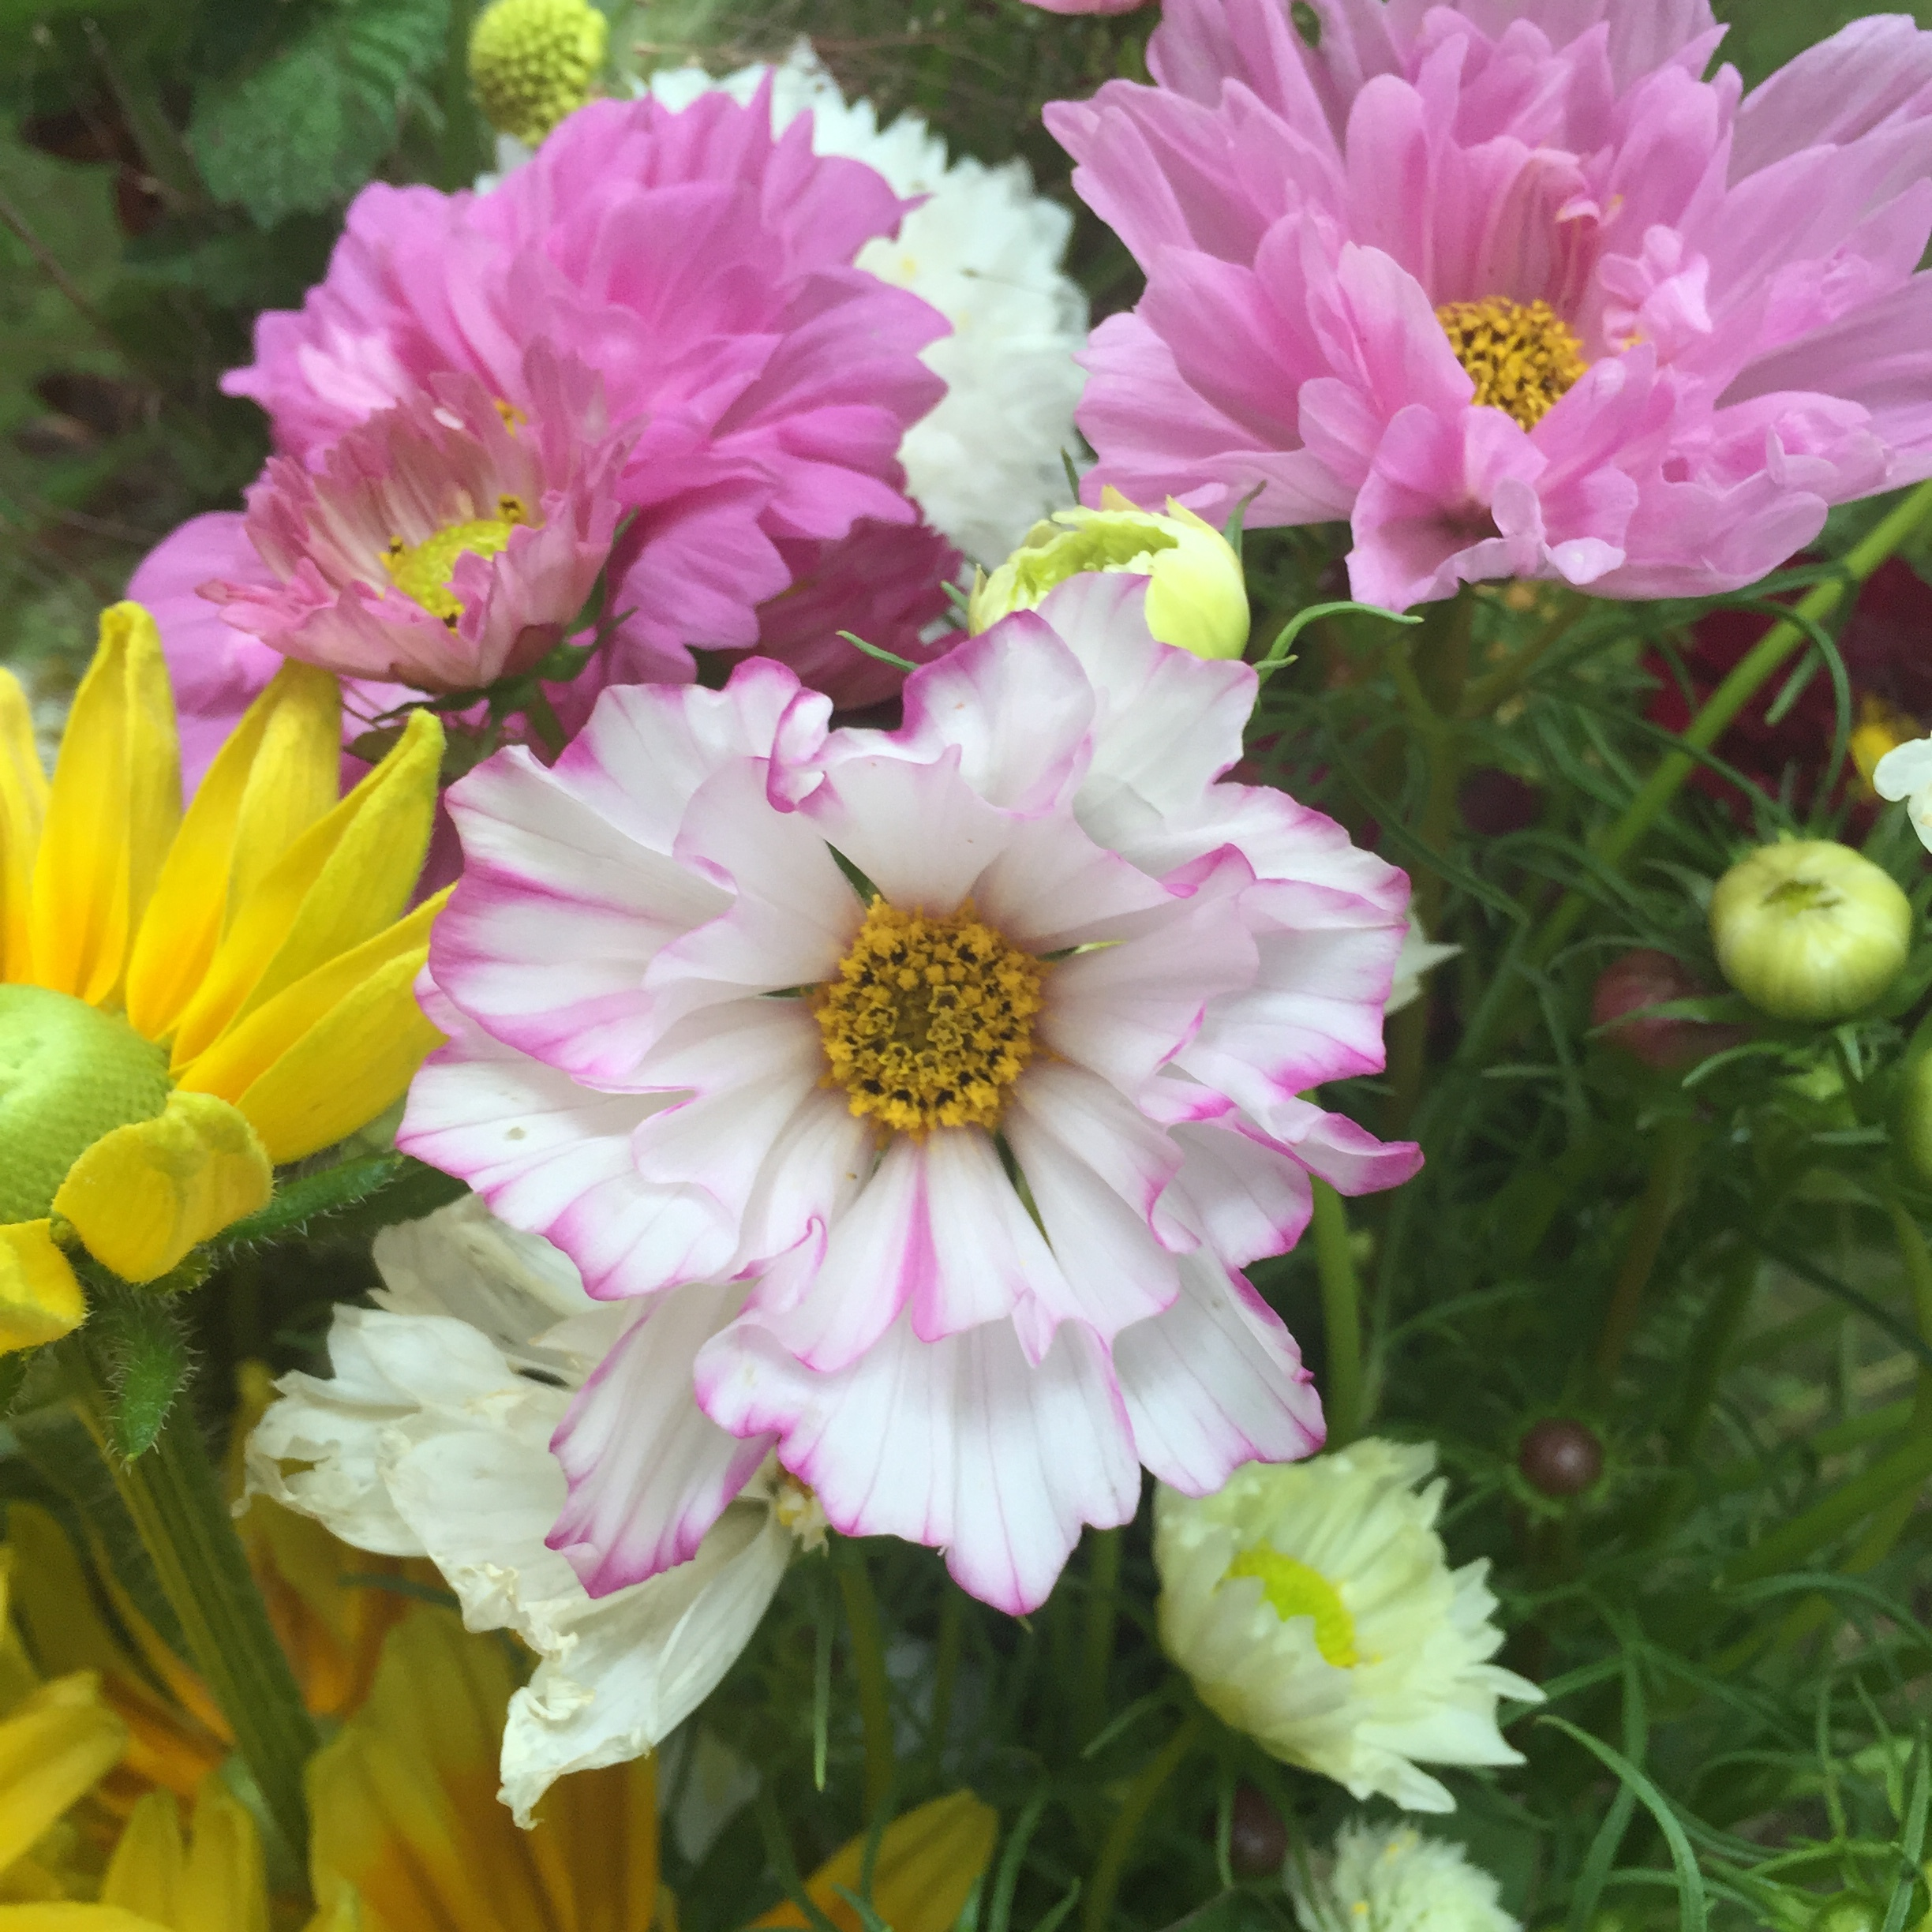 Cosmos 'Double Click' Mix - These are not your average cosmos! With ruffly, fluffy petals theses beauties will make your heart skip a beat. Like zinnias, cut cosmos deeply at first to encourage longer stems and more branches. Pick cosmos when they first petals start to unfurl from the bud. Cosmos are a great filler for bouquets and this mix comes in shades of white, light pink, dark pink and white with pink picotee. Their fern-y foliage adds a lovely texture to bouquets too.